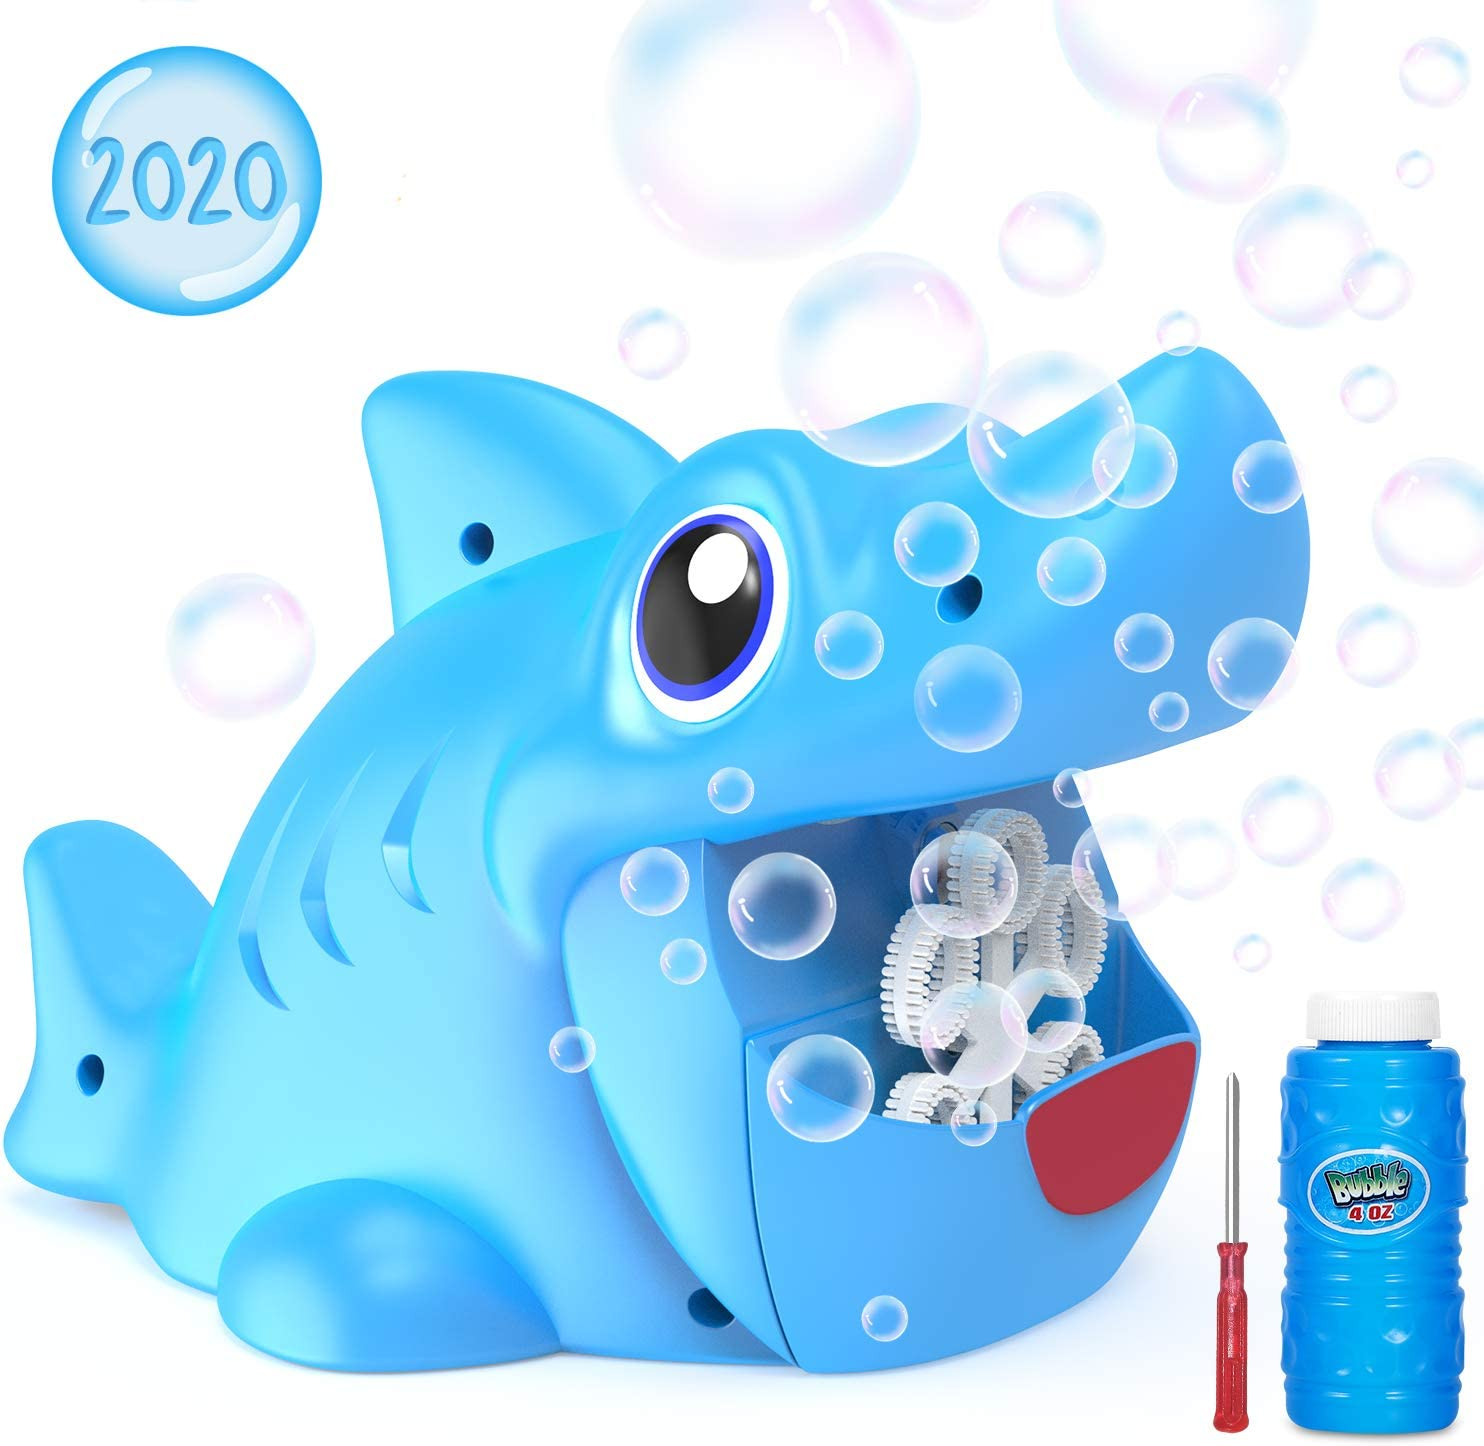 WisToyz Bubble Machine Shark Bubble Blower Bubble Maker, Shark Toys Baby Bath Toys, Bubble Machine for Kids Toddlers Boys Girls, Bubble Solution&Screwdriver Included, Two Batteries Needed